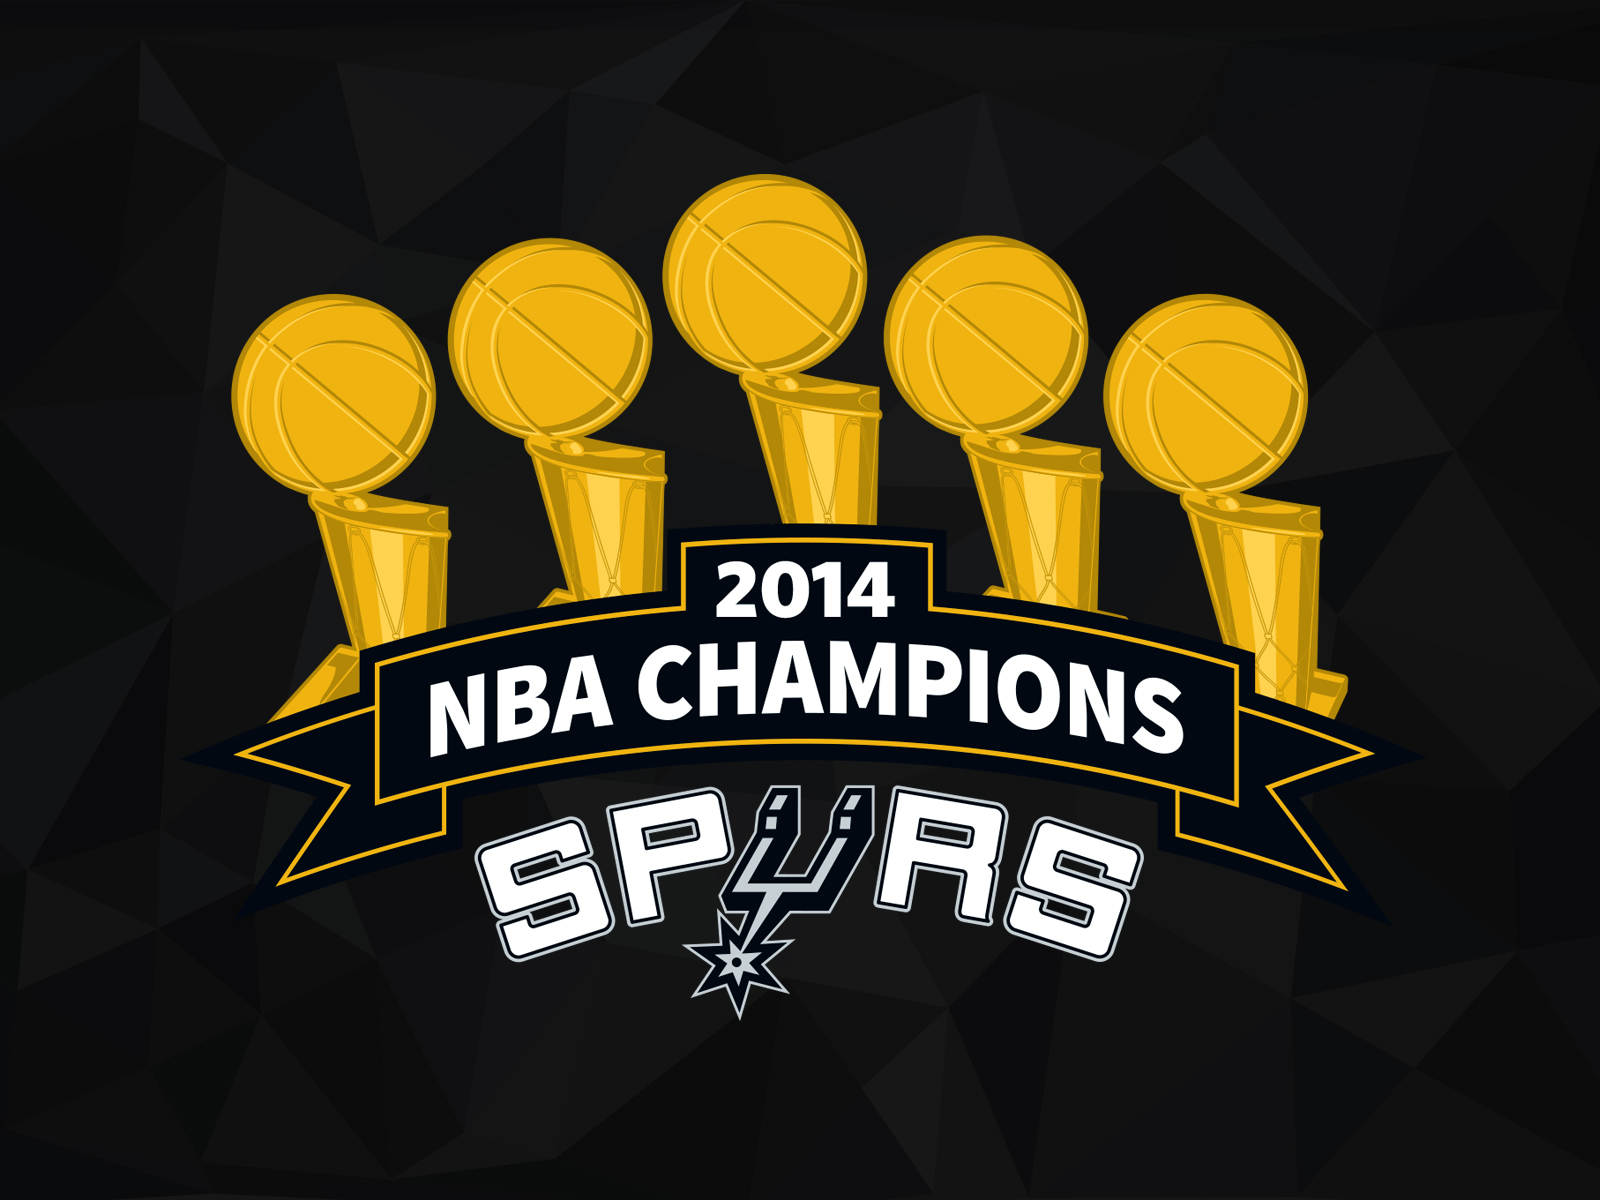 2014 Finals Wallpaper | THE OFFICIAL SITE OF THE SAN ANTONIO SPURS